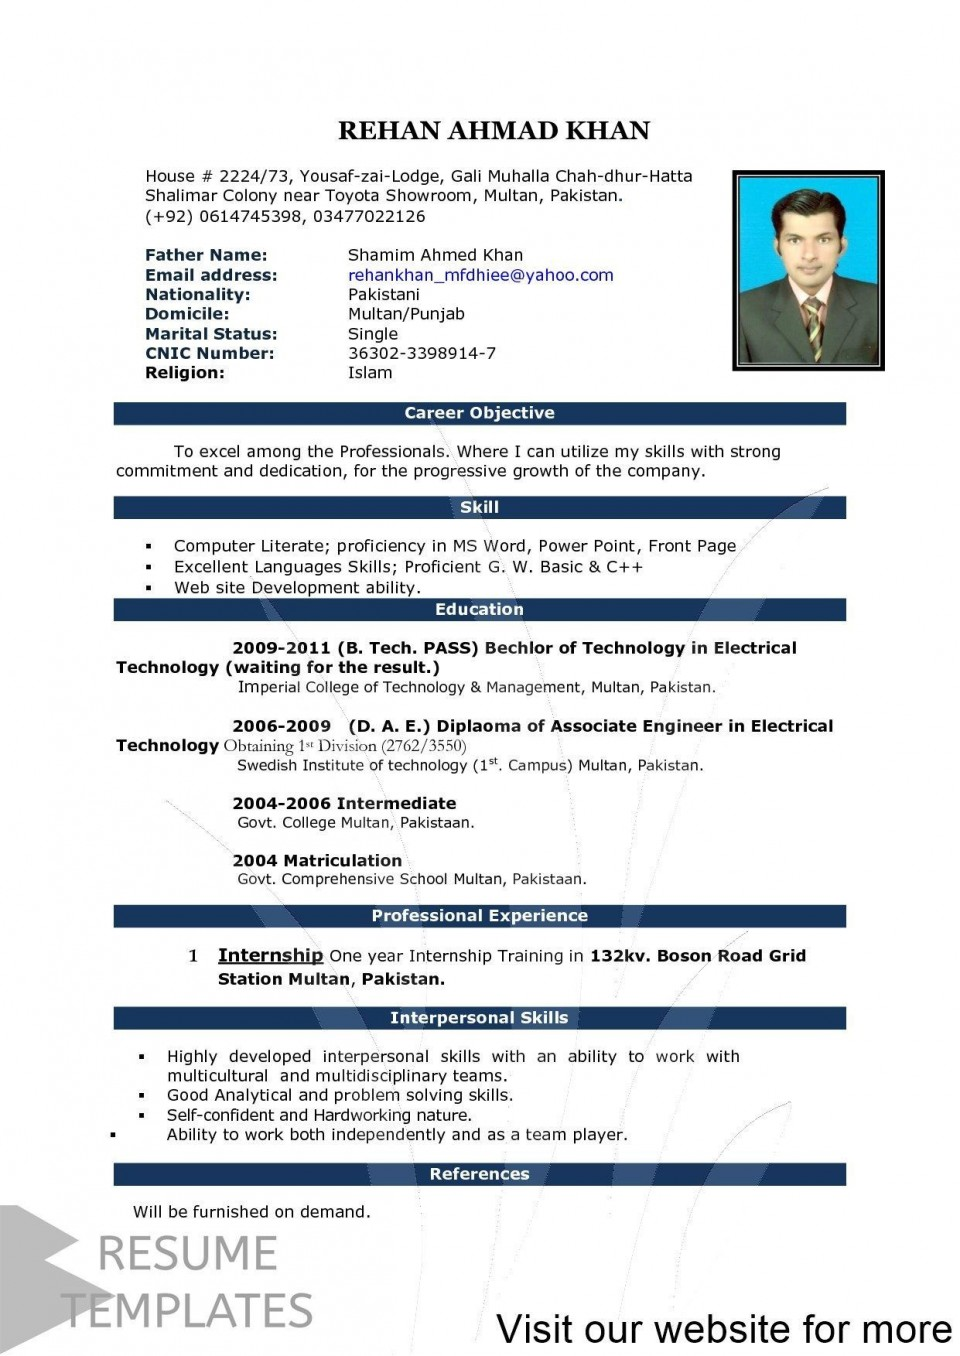 000 Simple How To Create A Resume Template In Word 2020 Inspiration 960